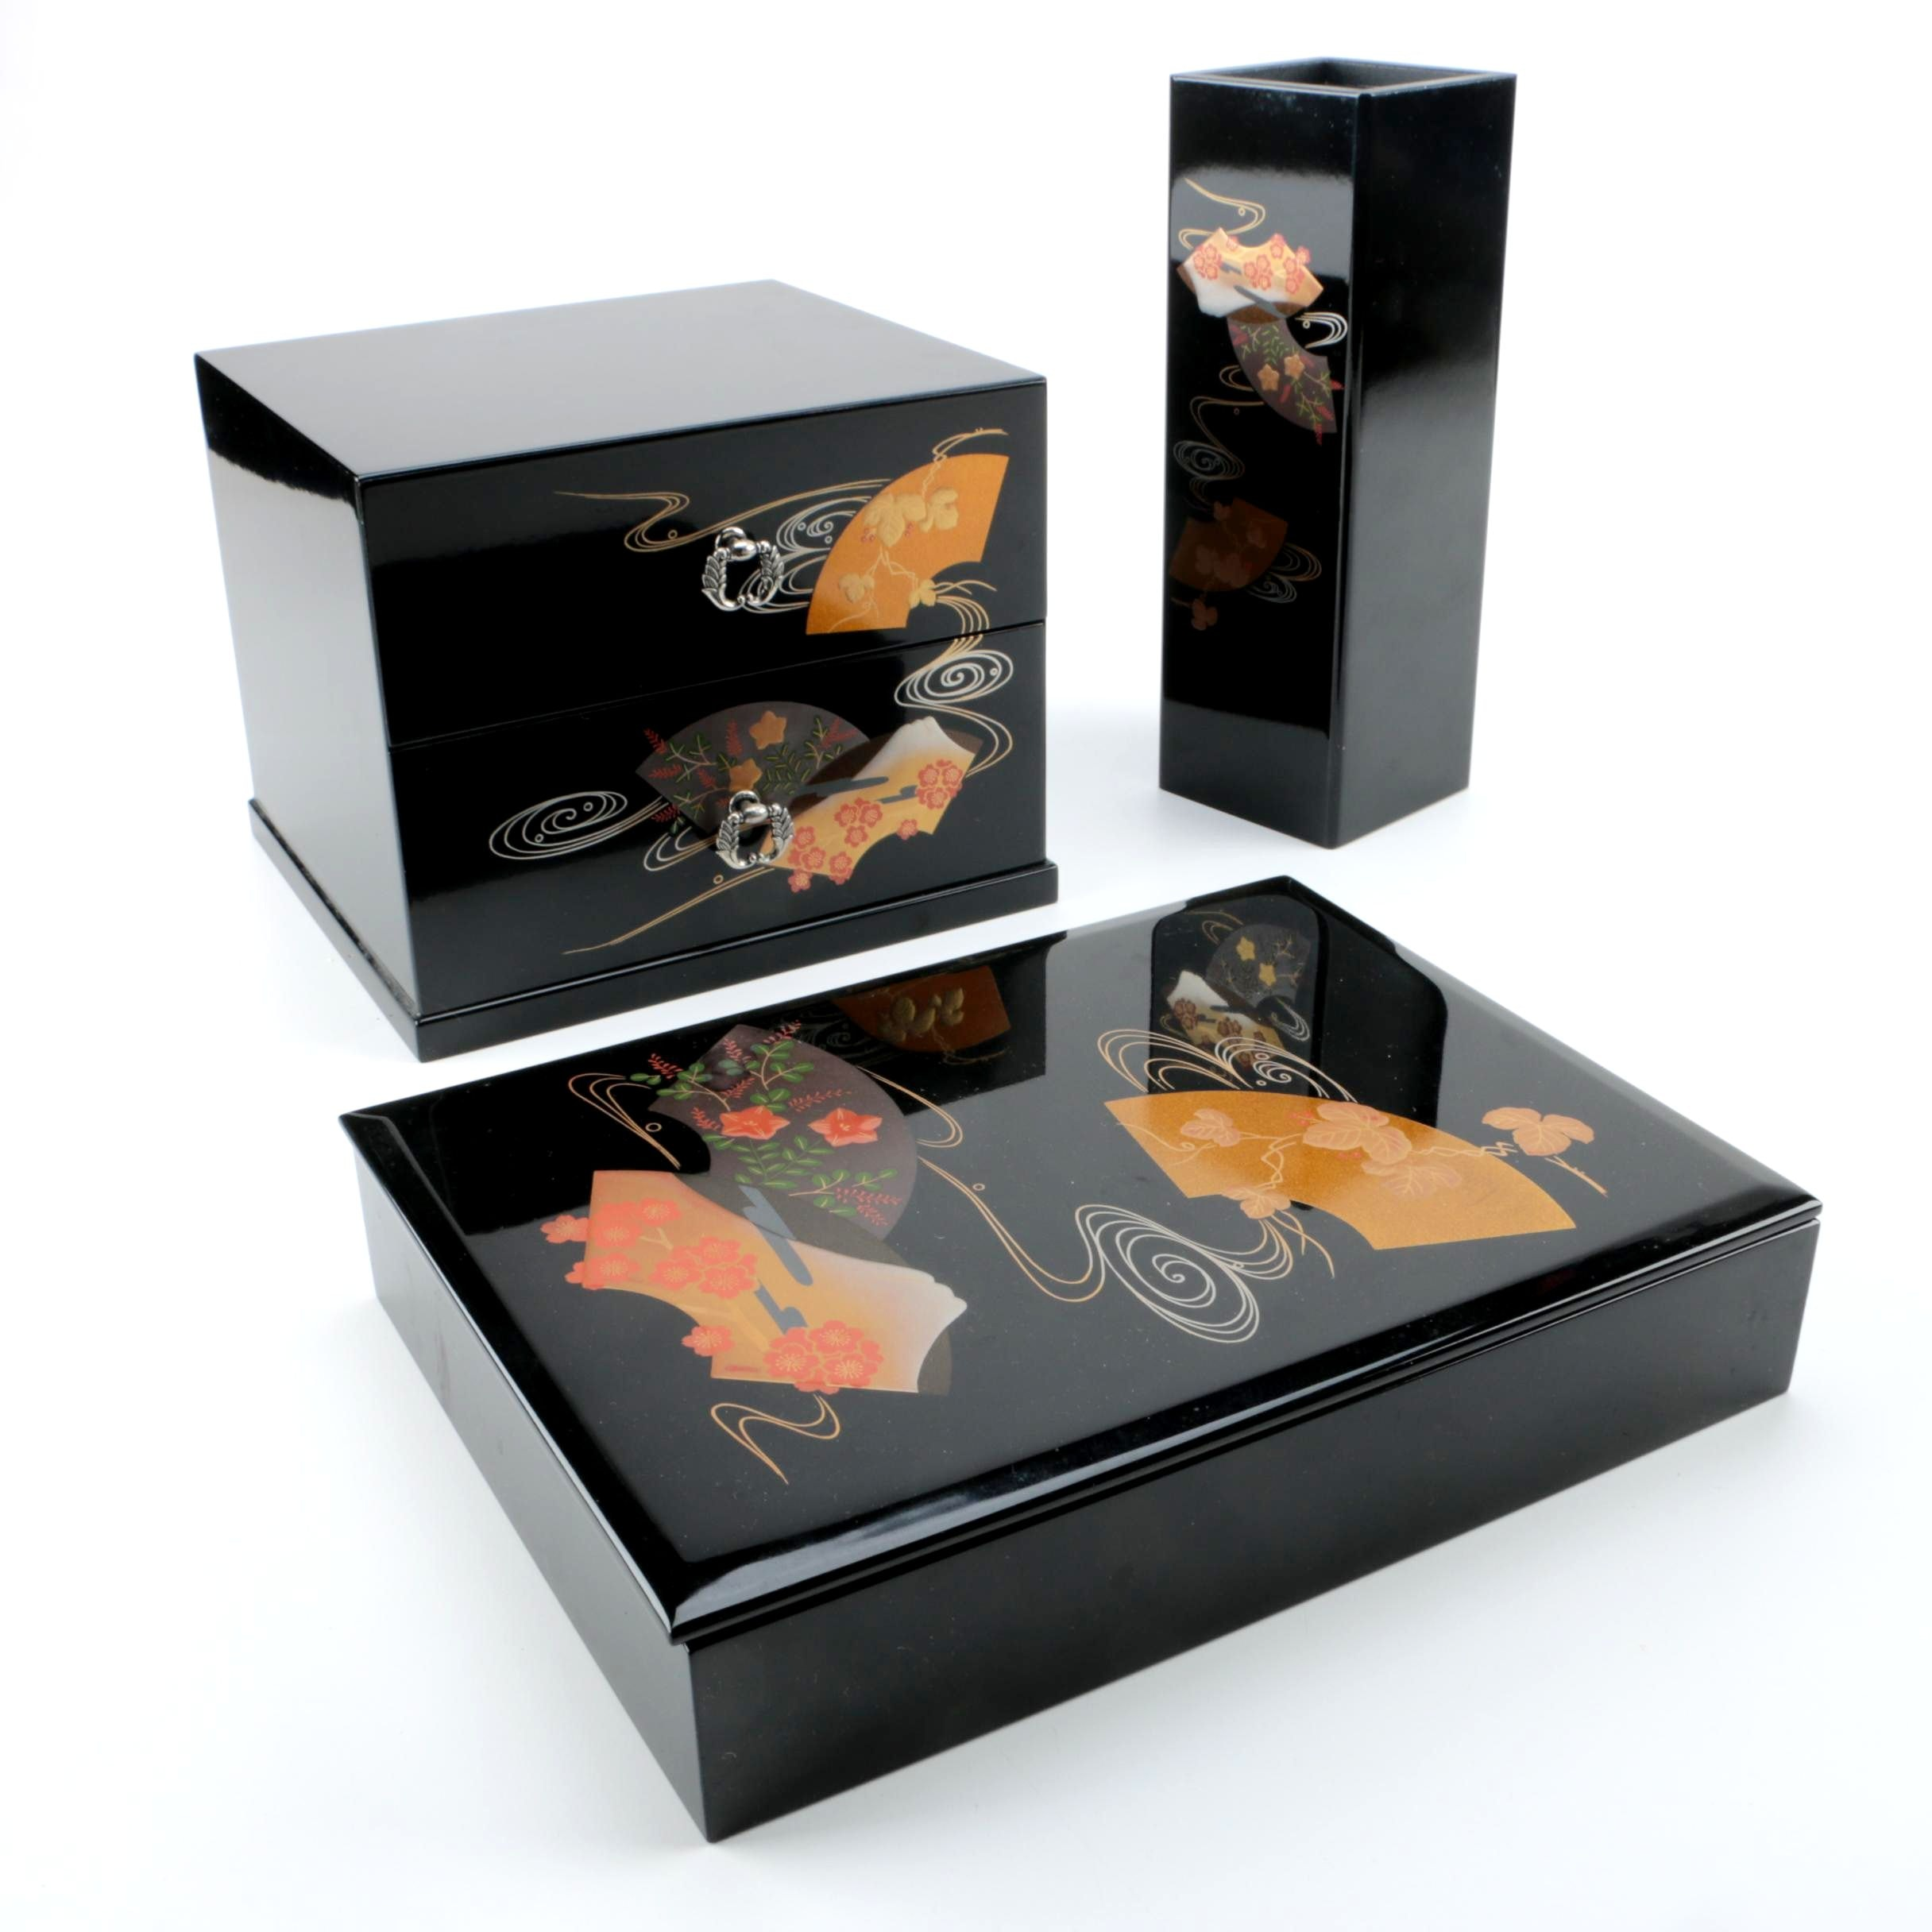 East Asian Inspired Black Lacquer Decor